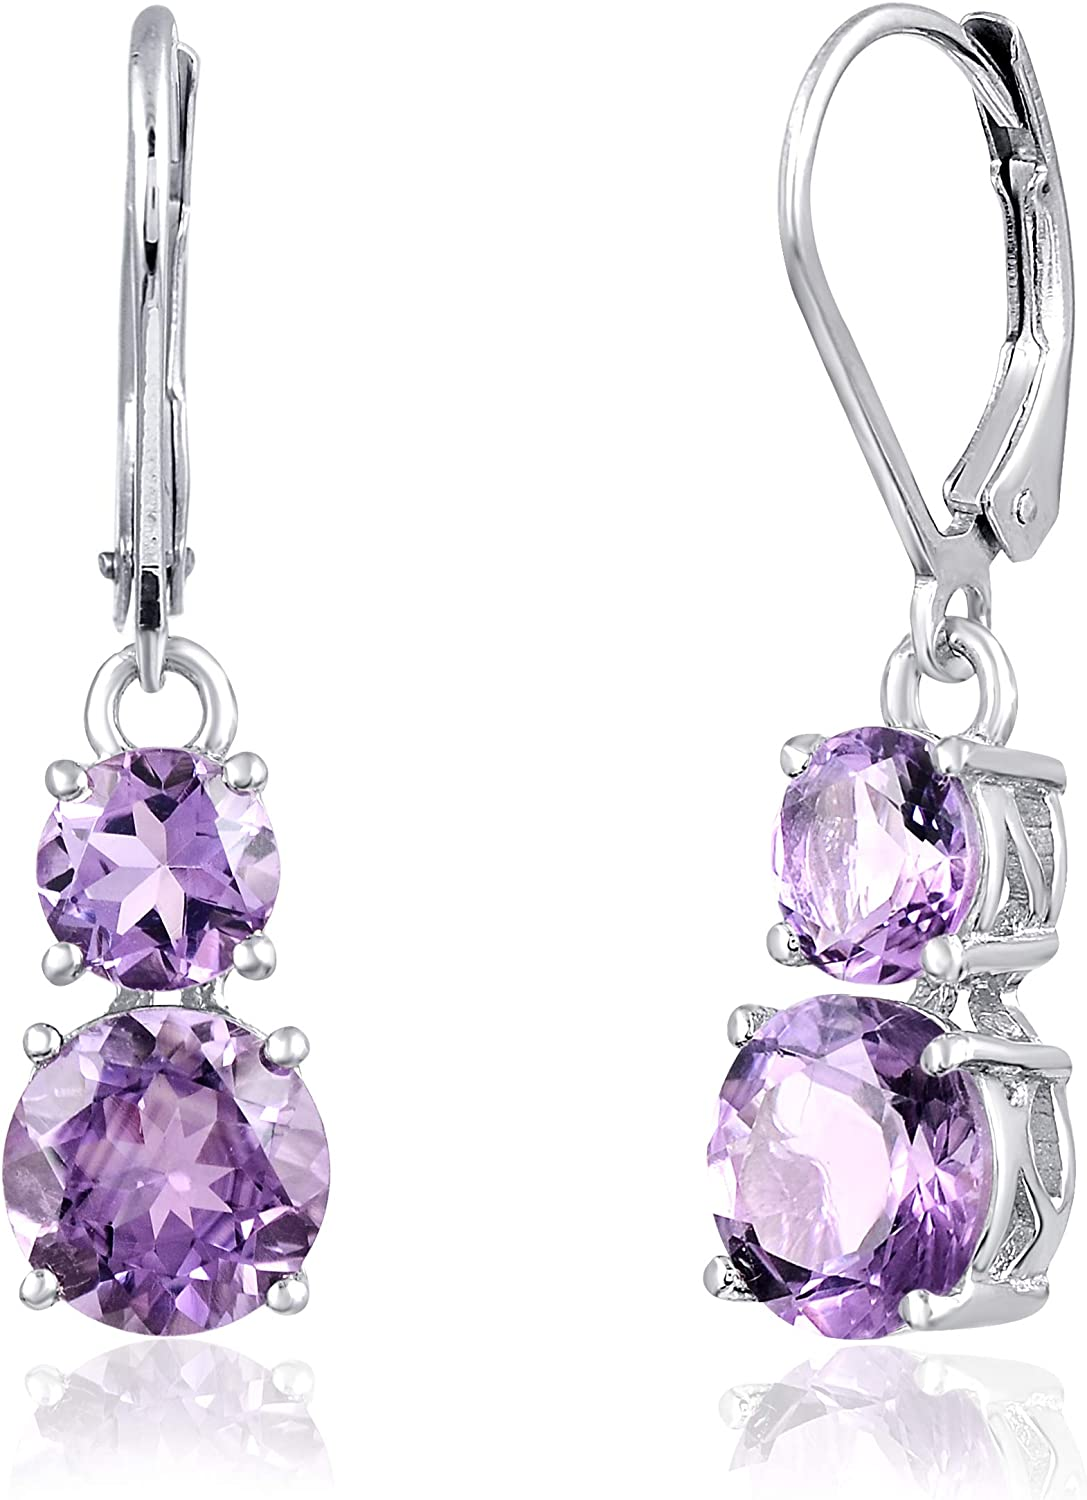 Orchid Jewelry Courier shipping Ranking TOP17 free Sterling Silver Earrings Se Hypoallergenic Dangle